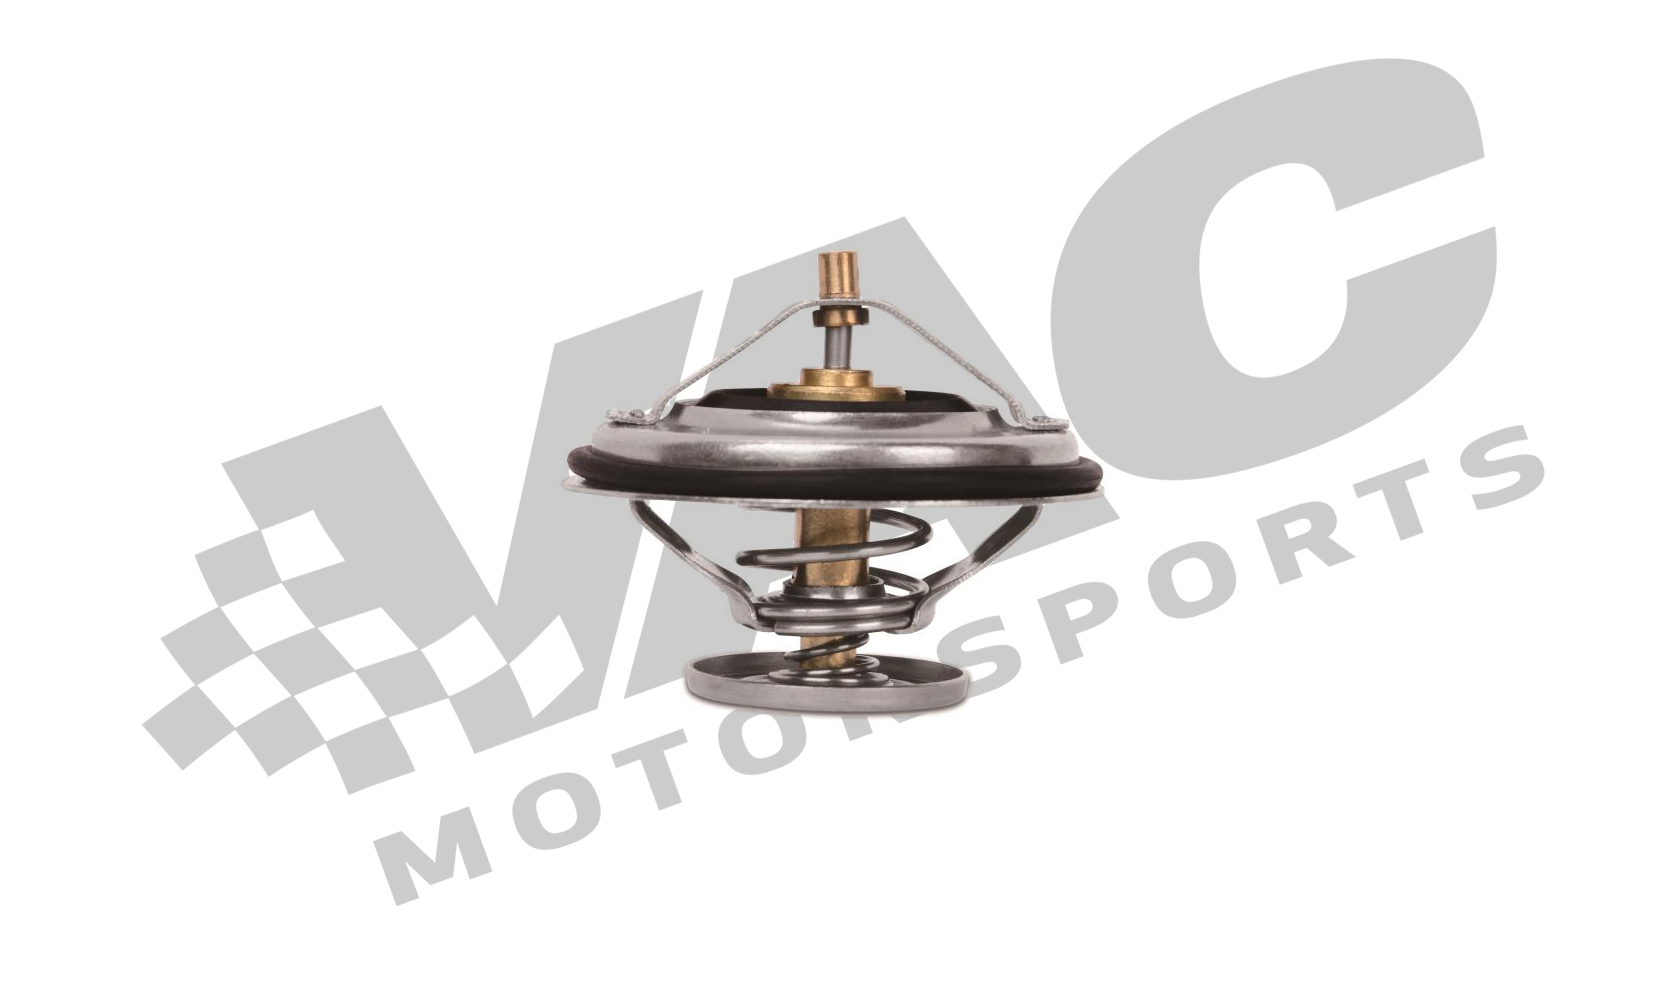 Mishimoto - Racing Thermostat (BMW N52, N54, N55) MAIN